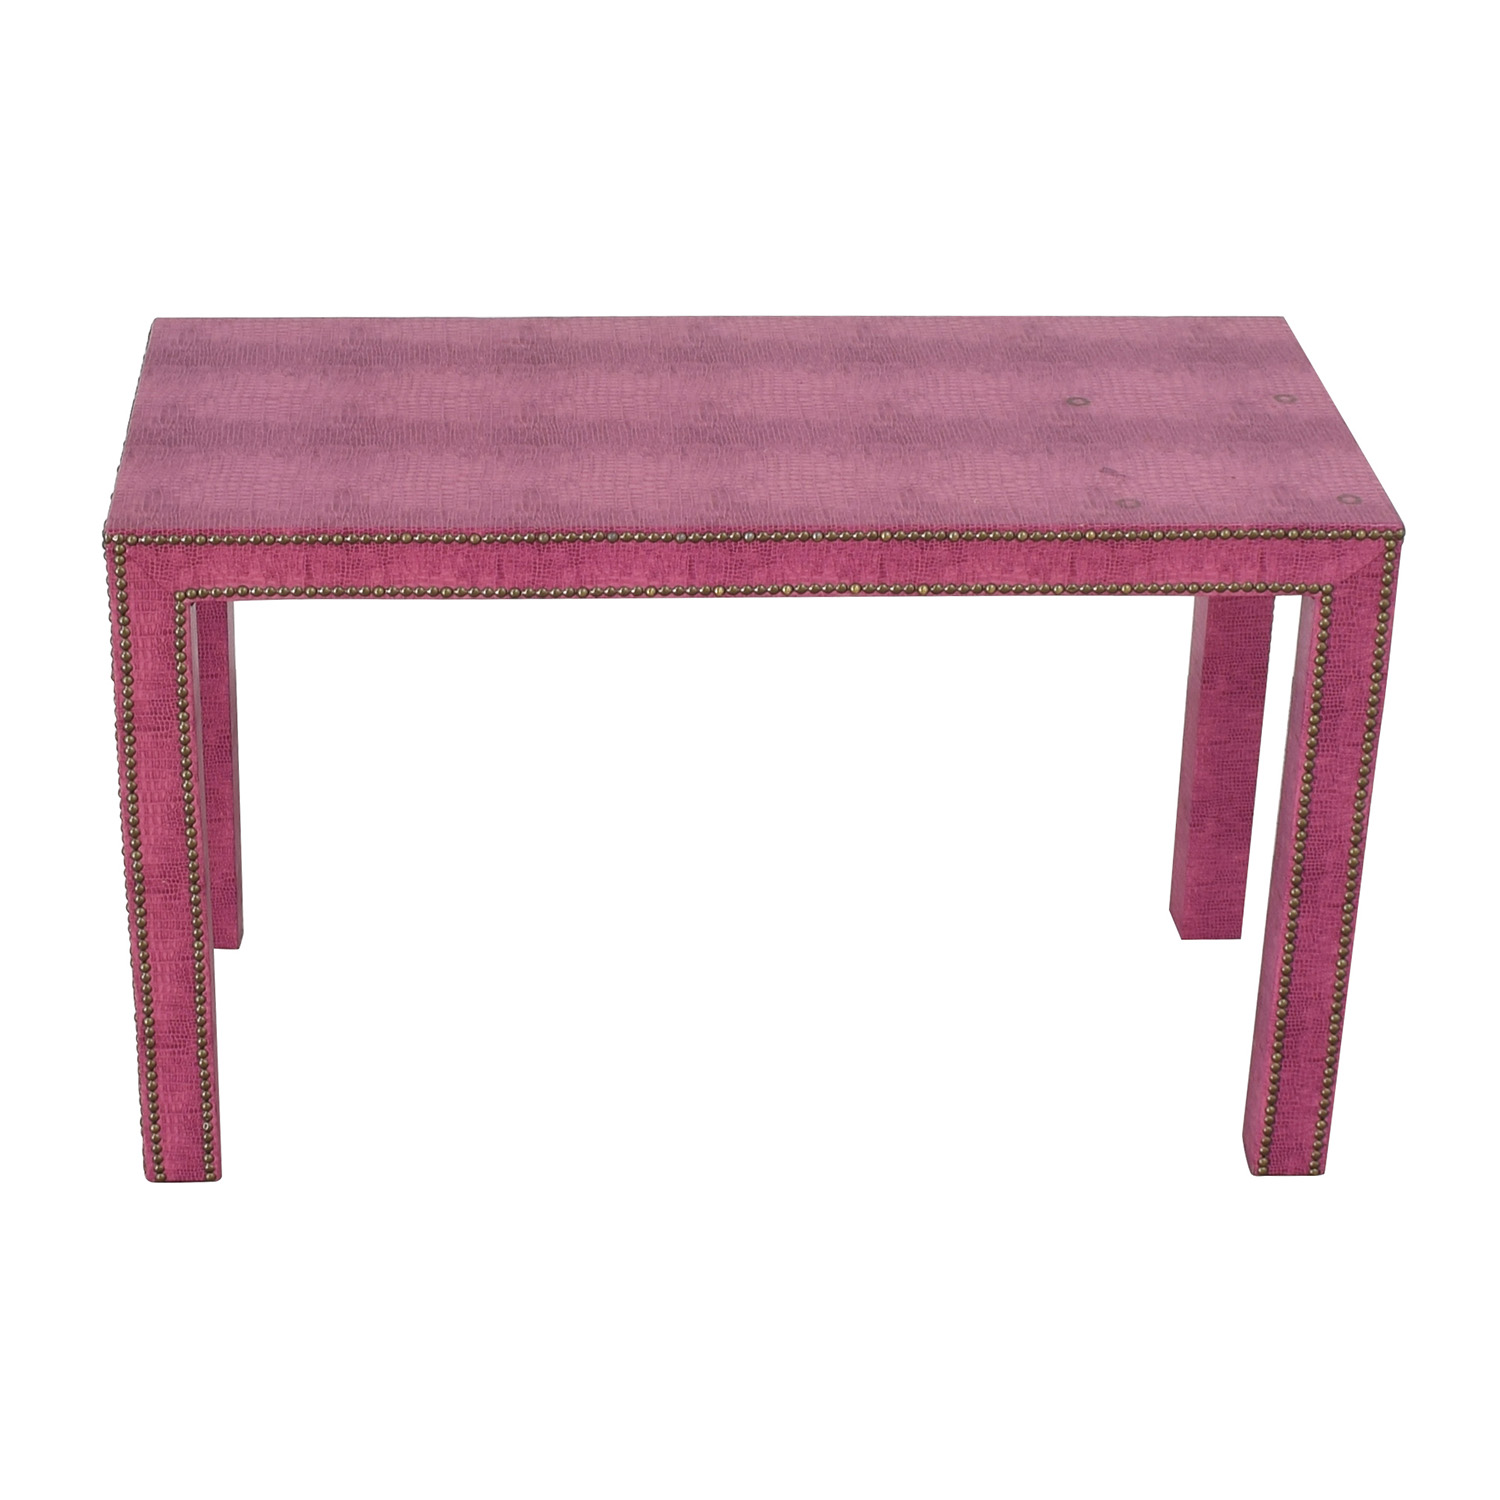 Society Social Society Social Chrystie Pink Nailhead Street Desk for sale